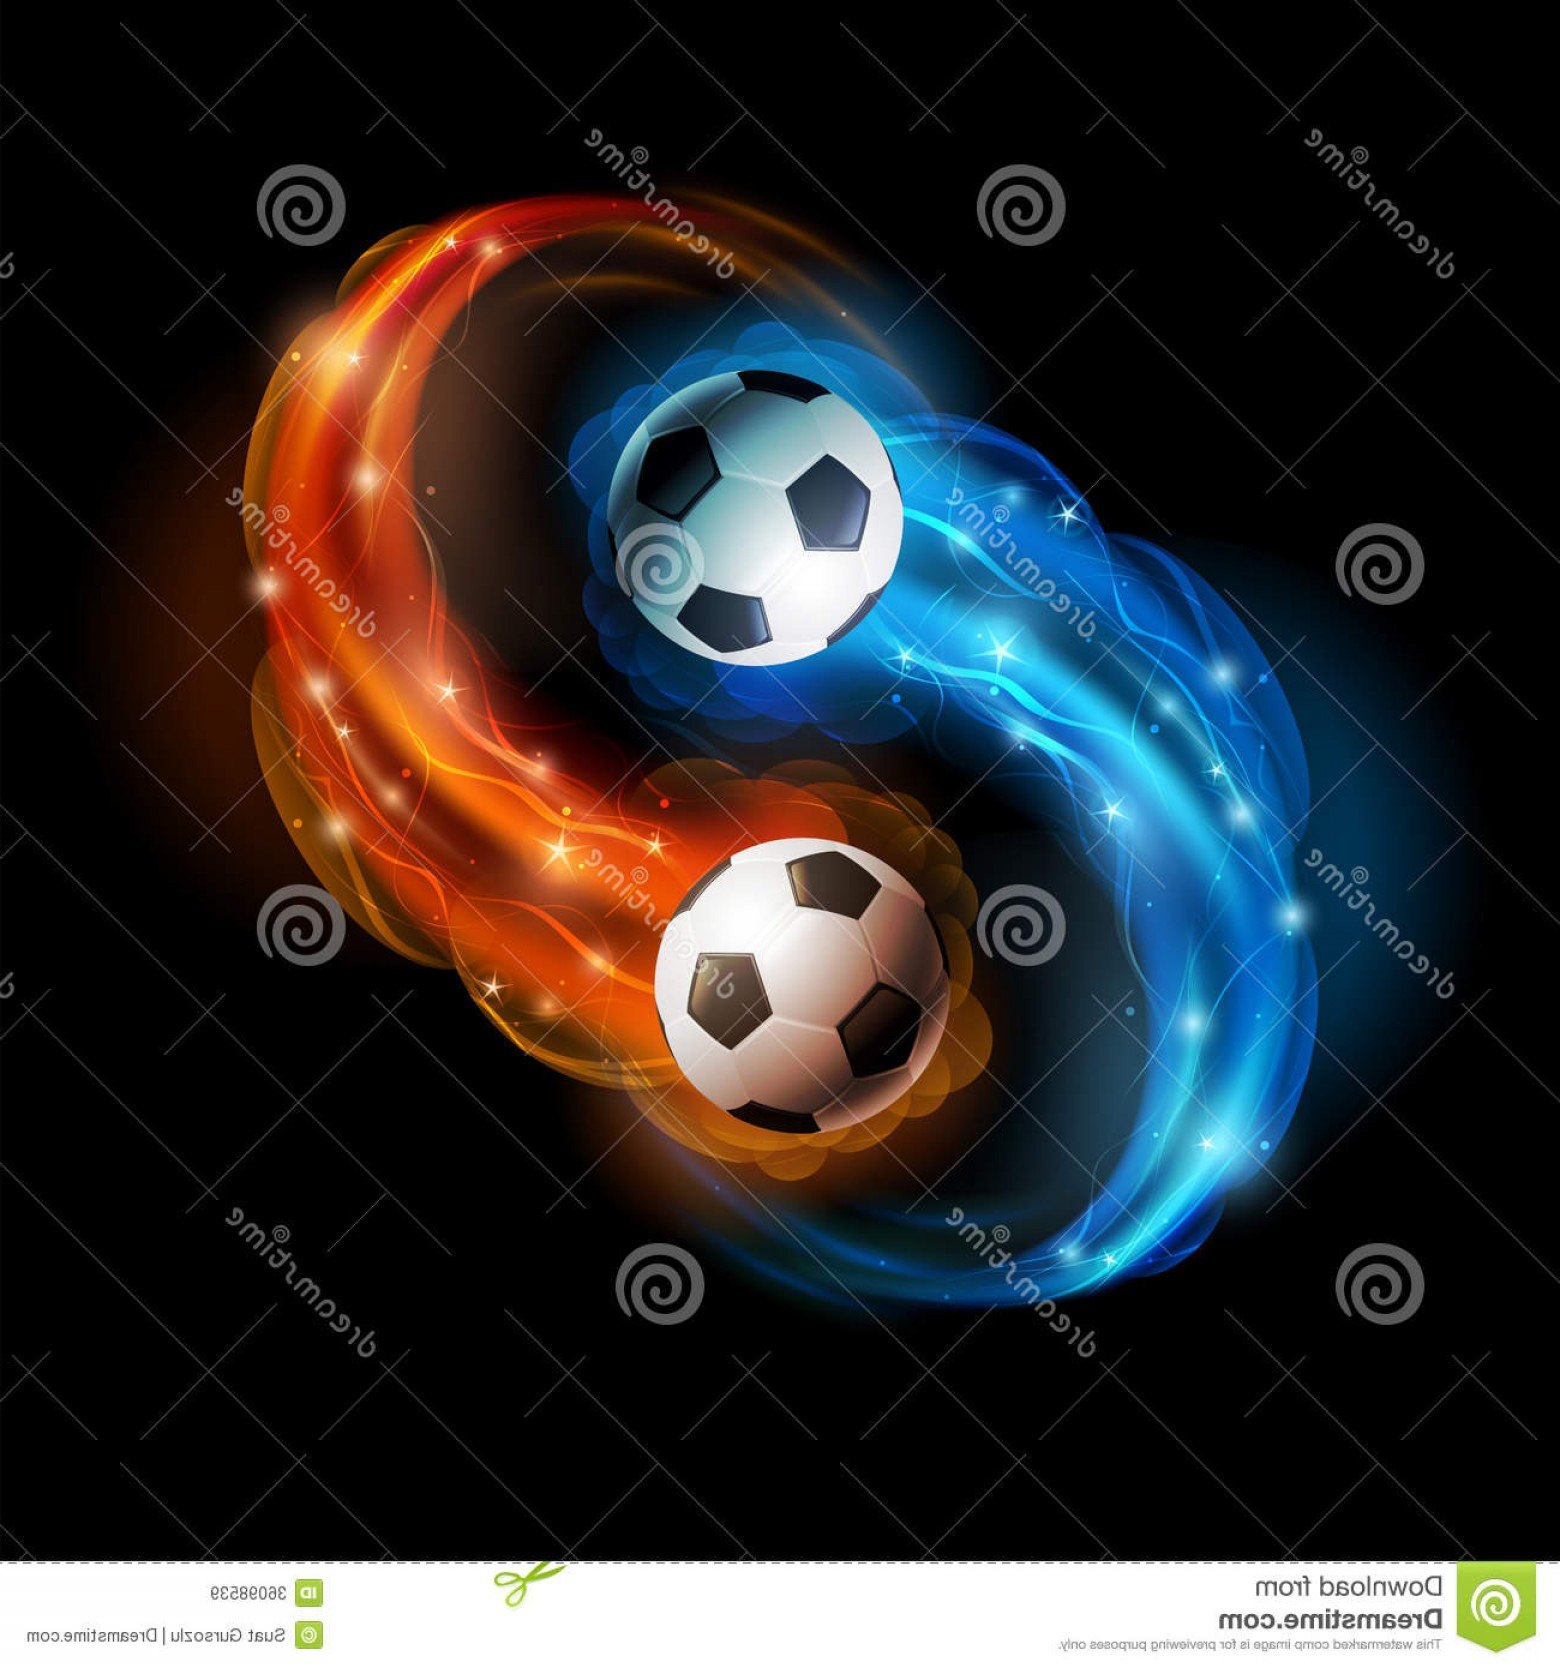 Soccer Blue Background Vector Graphics: Royalty Free Stock Images Soccer Ball Balls Flames Lights Against Black Background Vector Illustration Image